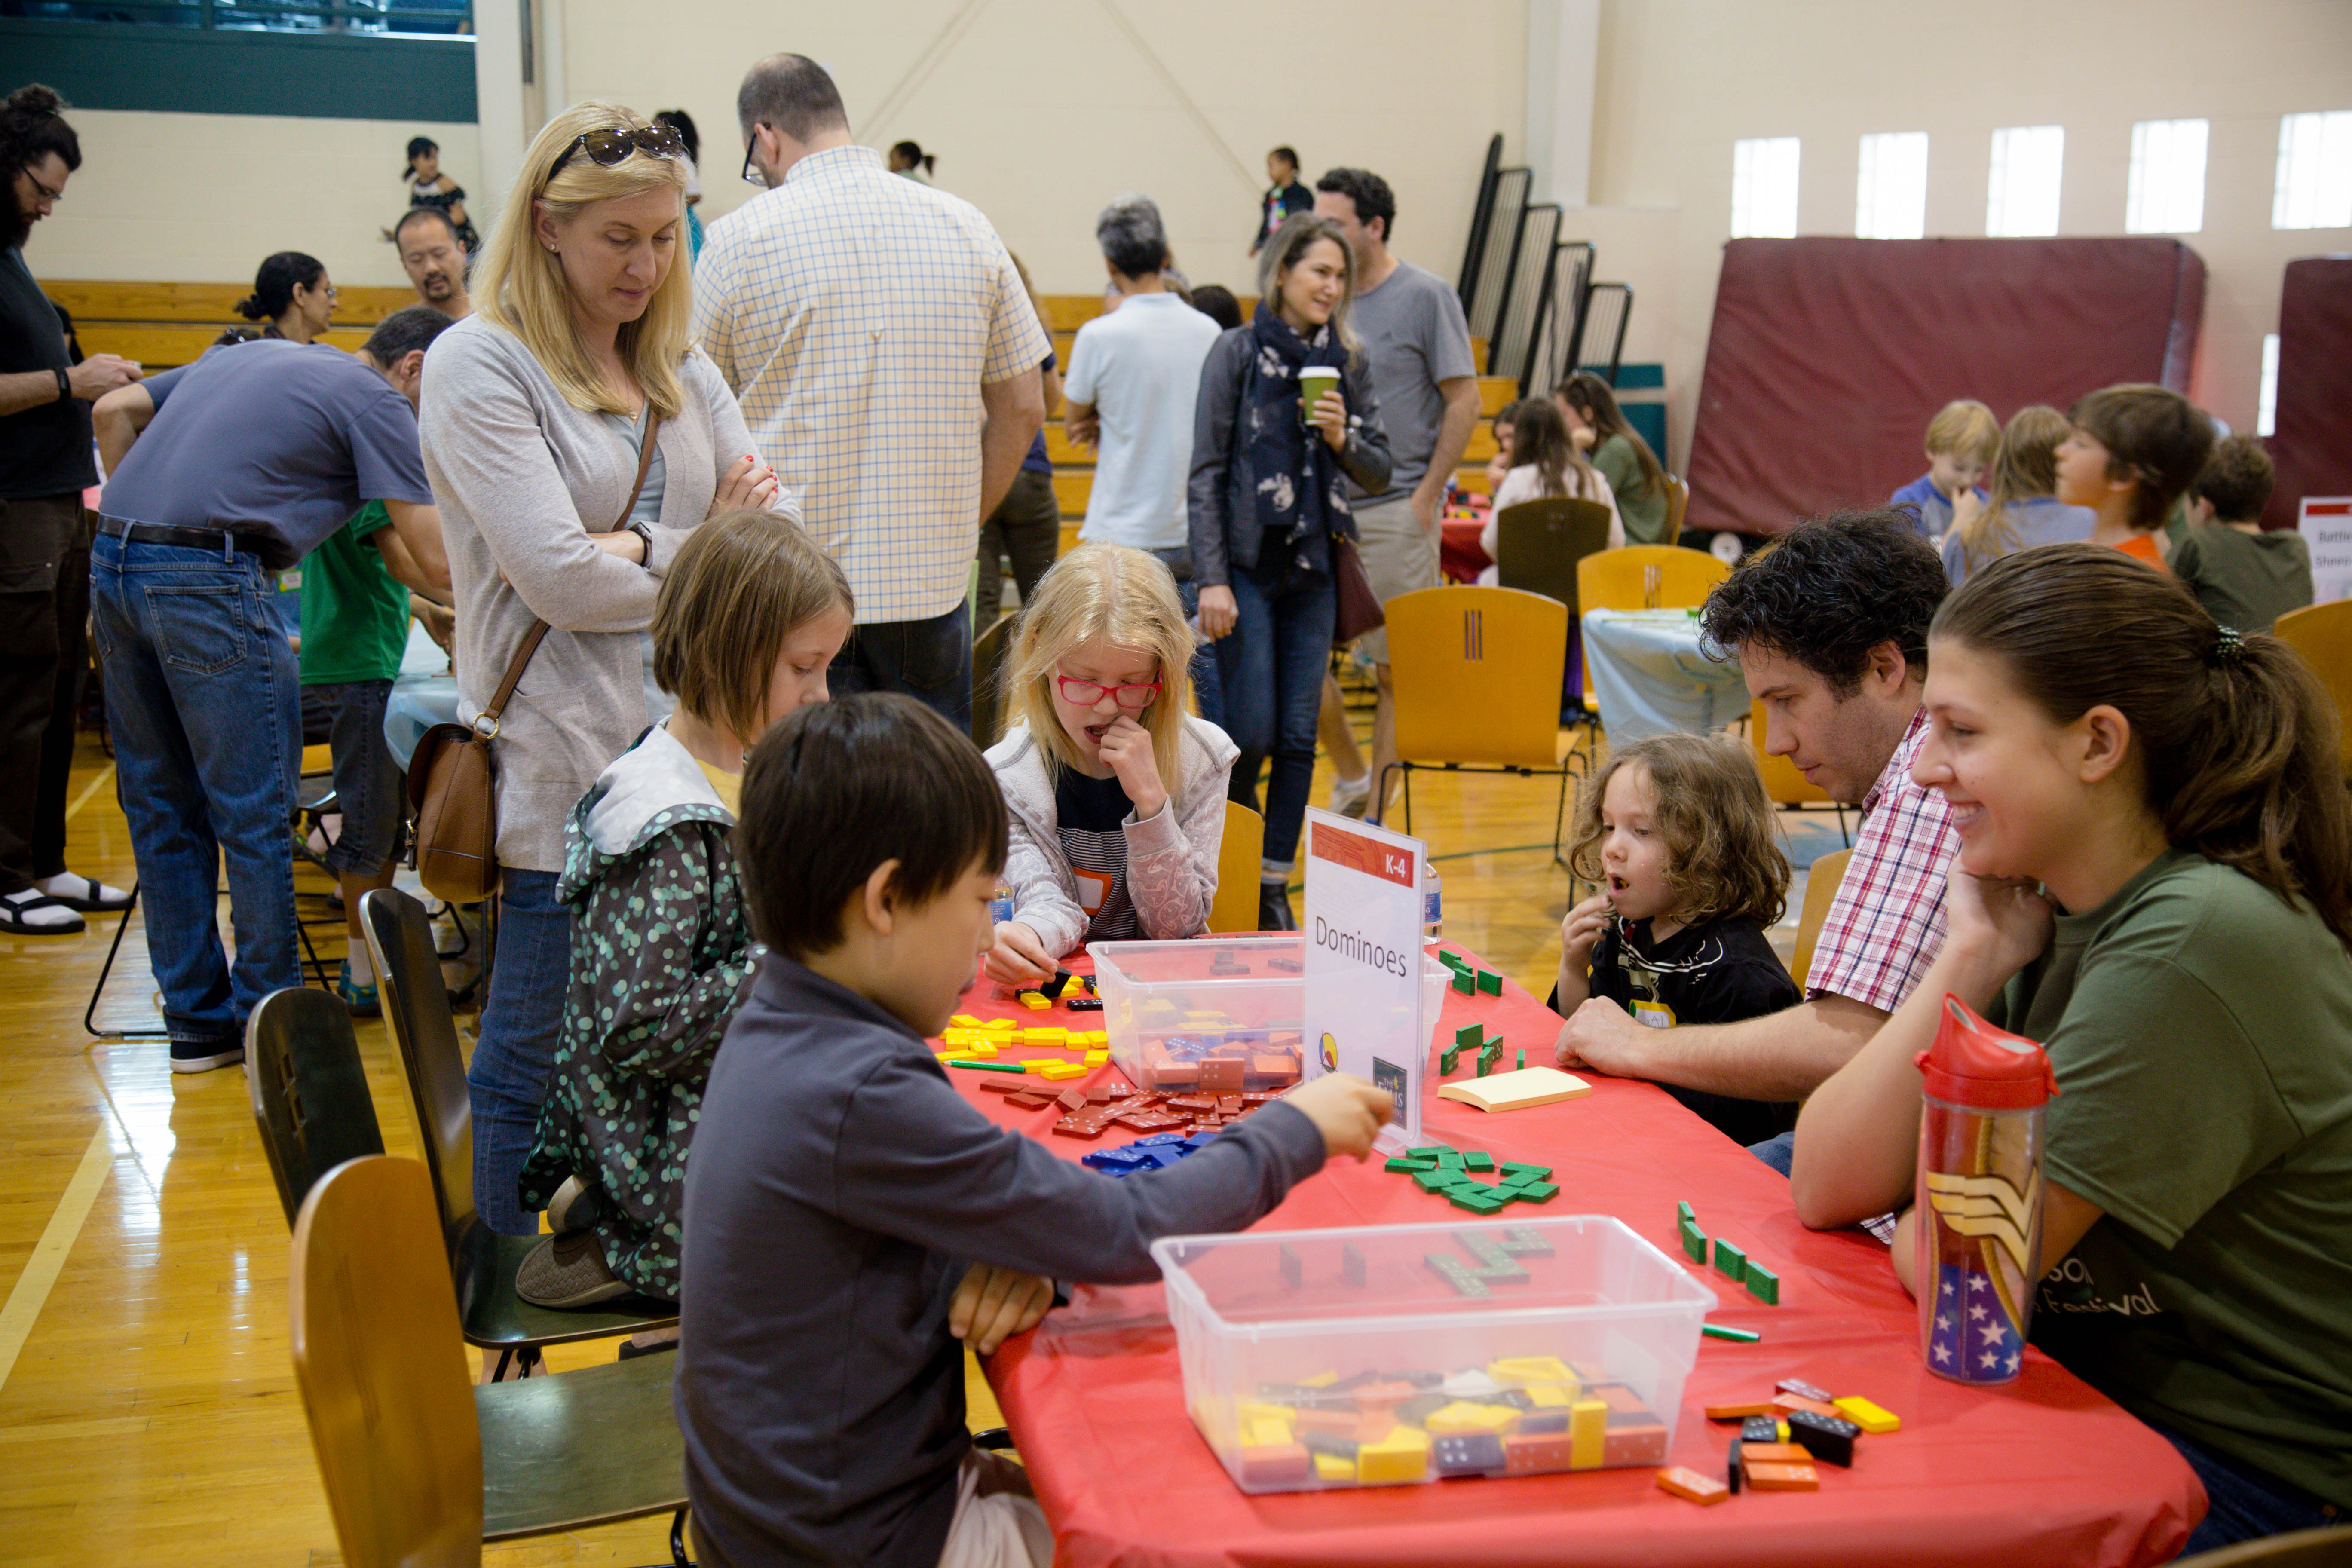 This is a photo of children playing math games at the Julia Robinson Mathematics Festival at The Ellis School.